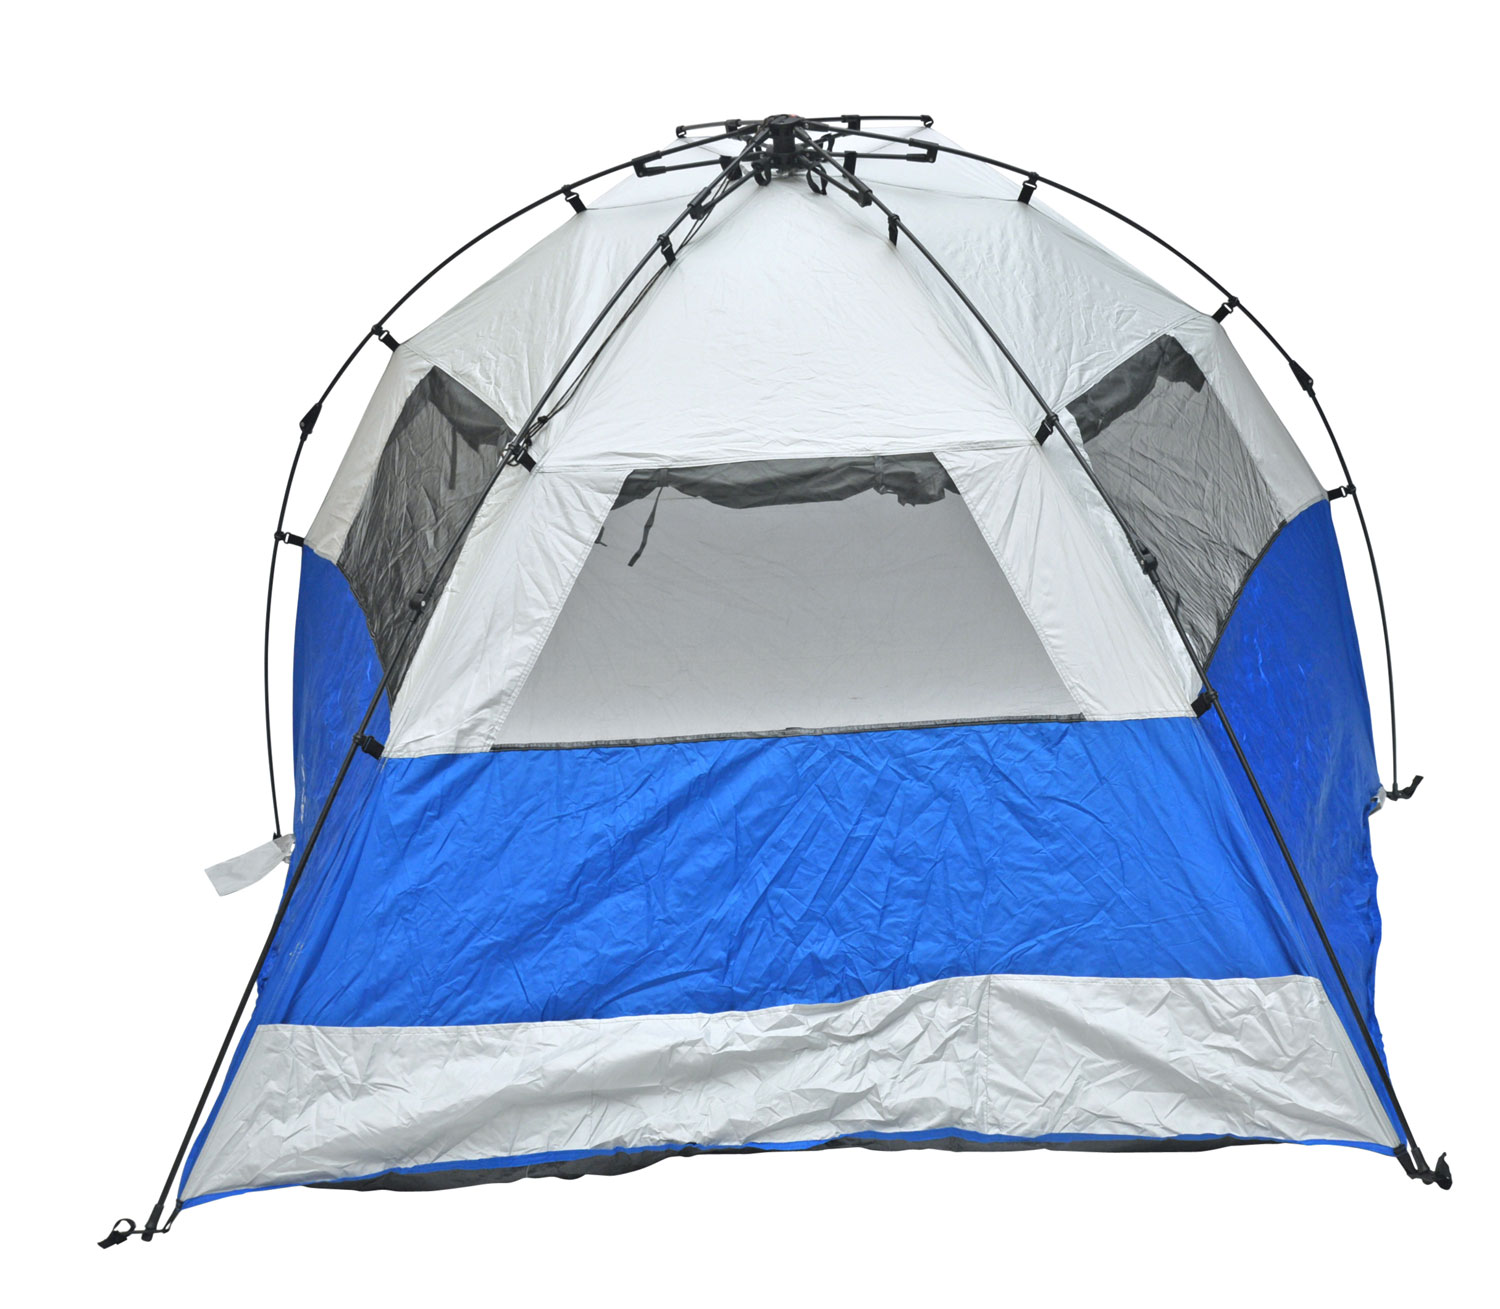 Instant Shelters With Side Walls : Deluxe instant popup beach tent shelter cabana upf